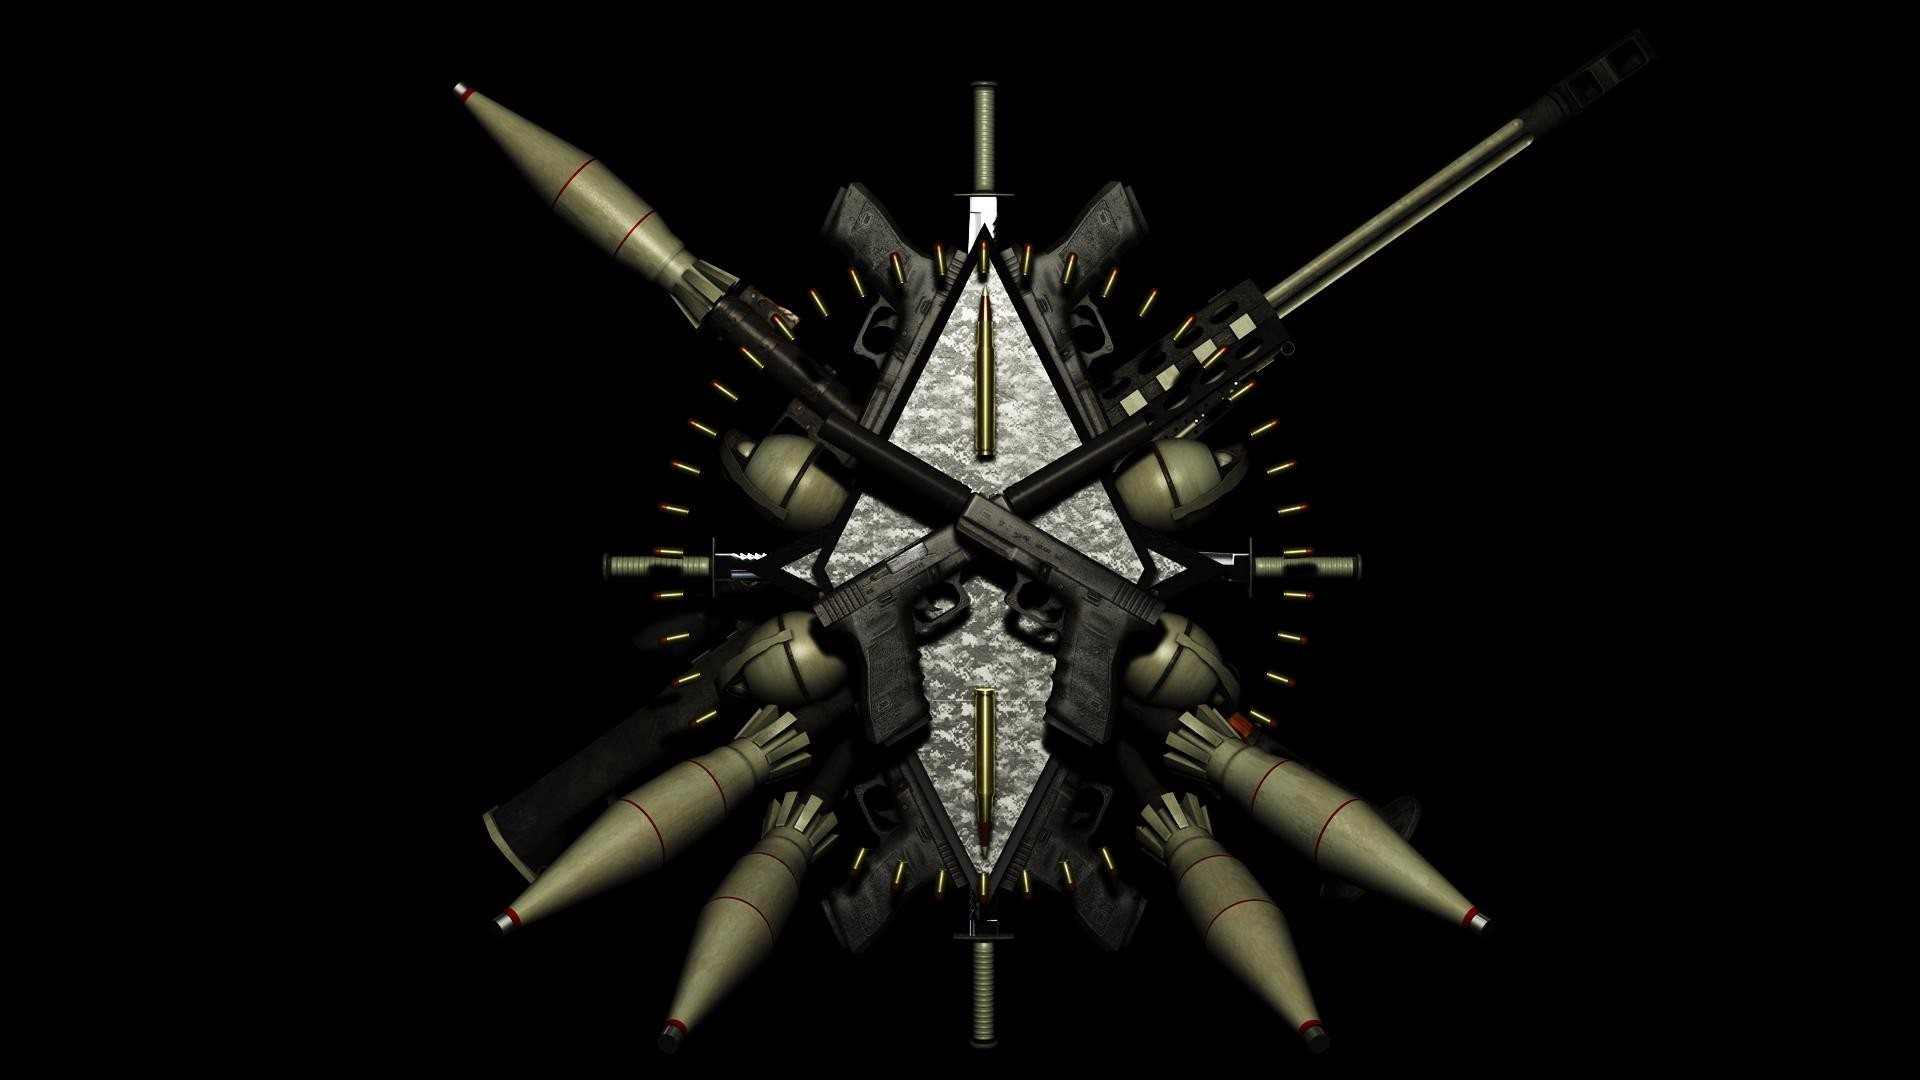 15 Weapon HD Wallpapers Backgrounds 1920x1080